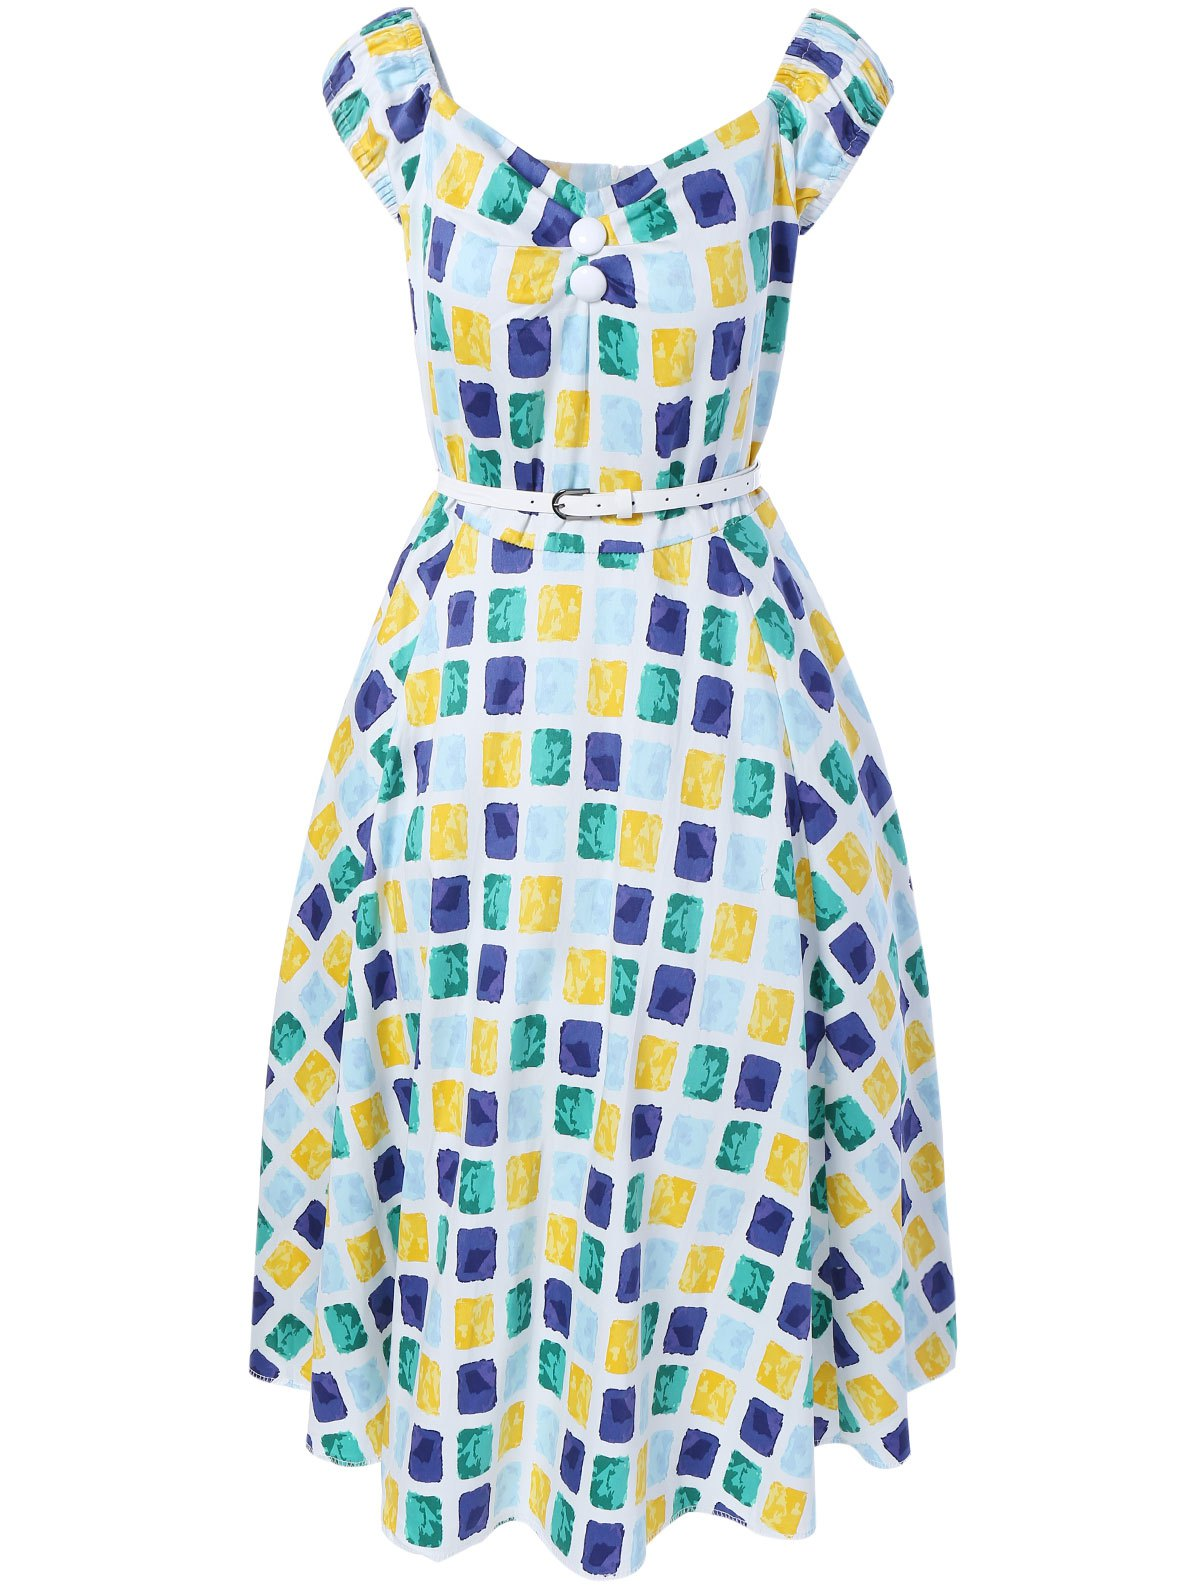 Oversized Colorful Plaid Print Pin Up Skater Dress - BLUE/YELLOW/GREEN L